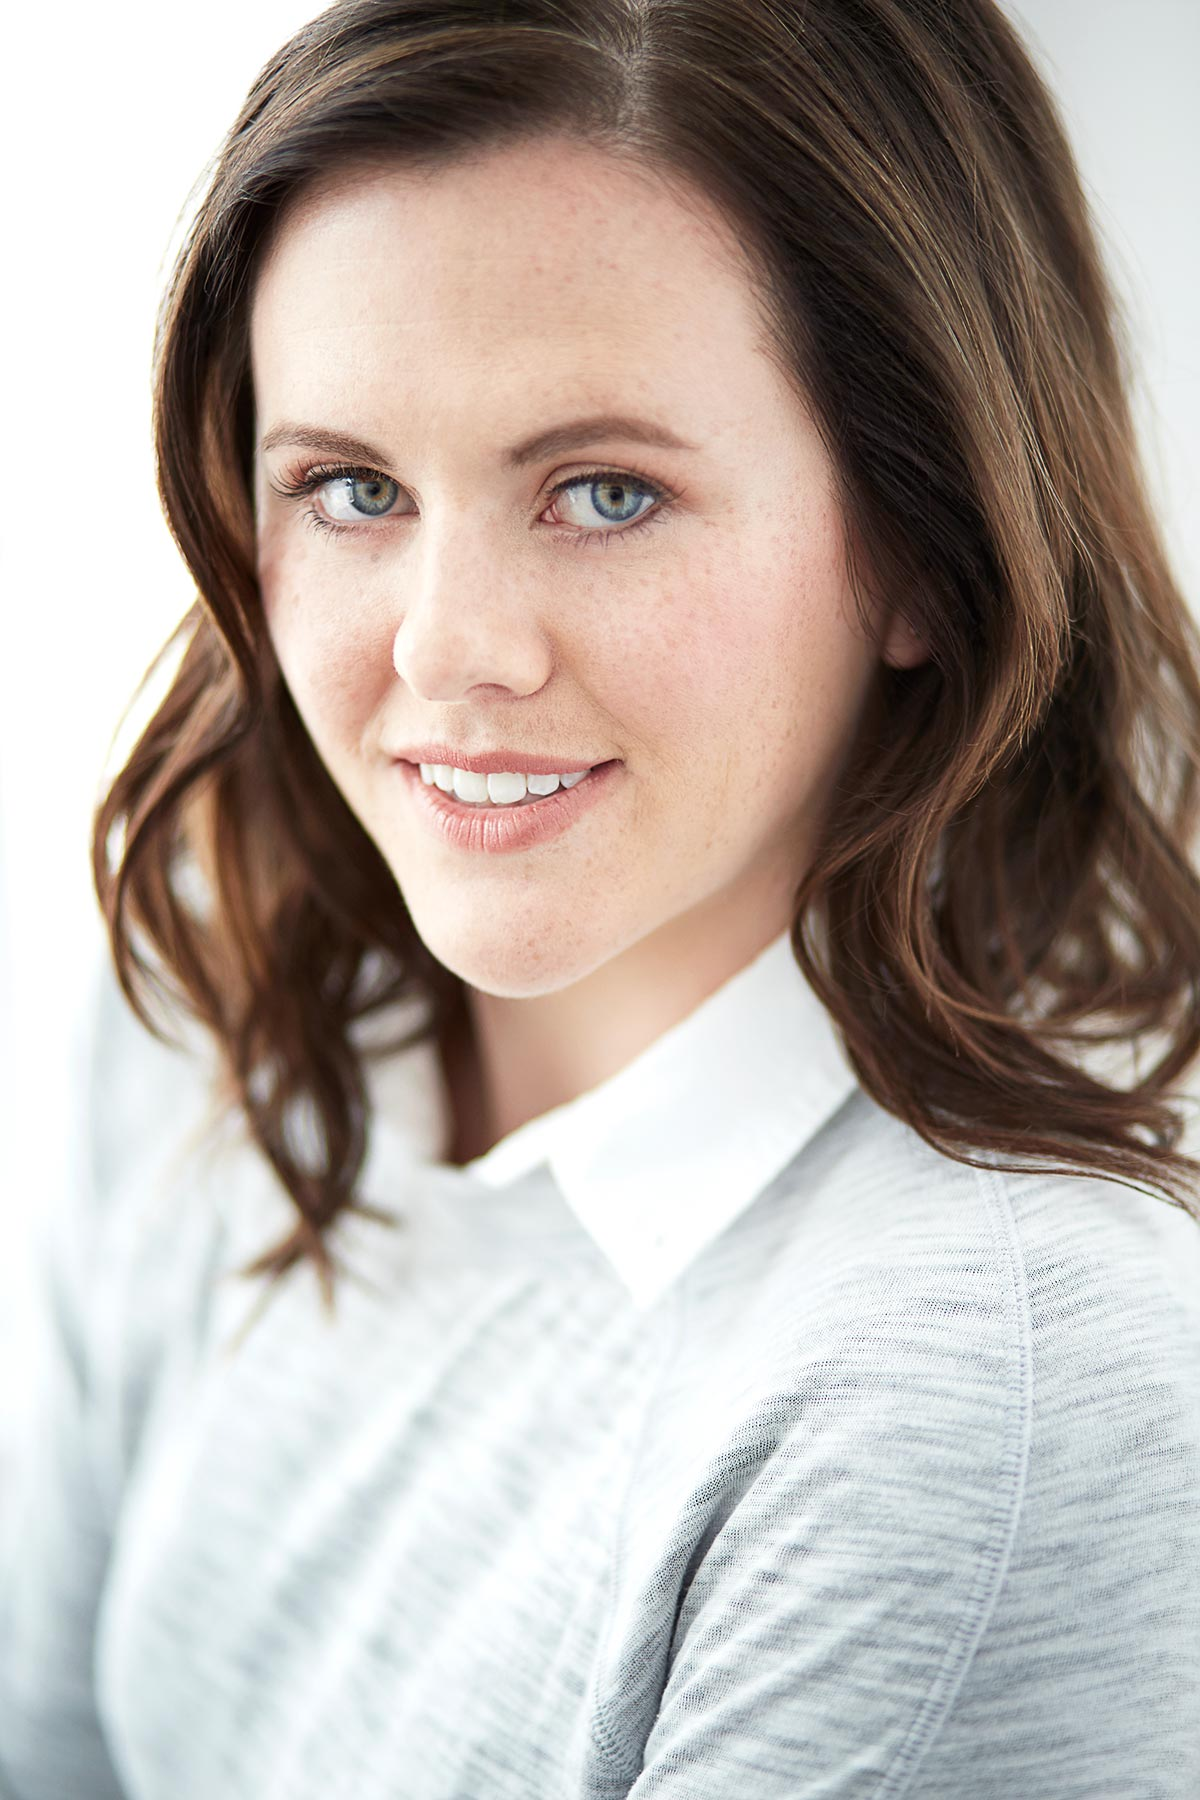 Kaitlyn_Professional_Headshots_Chicago_Actor_Actress_Theatrical_Commercial_Head_Shot_Women_Tiny_Space_Studio_III